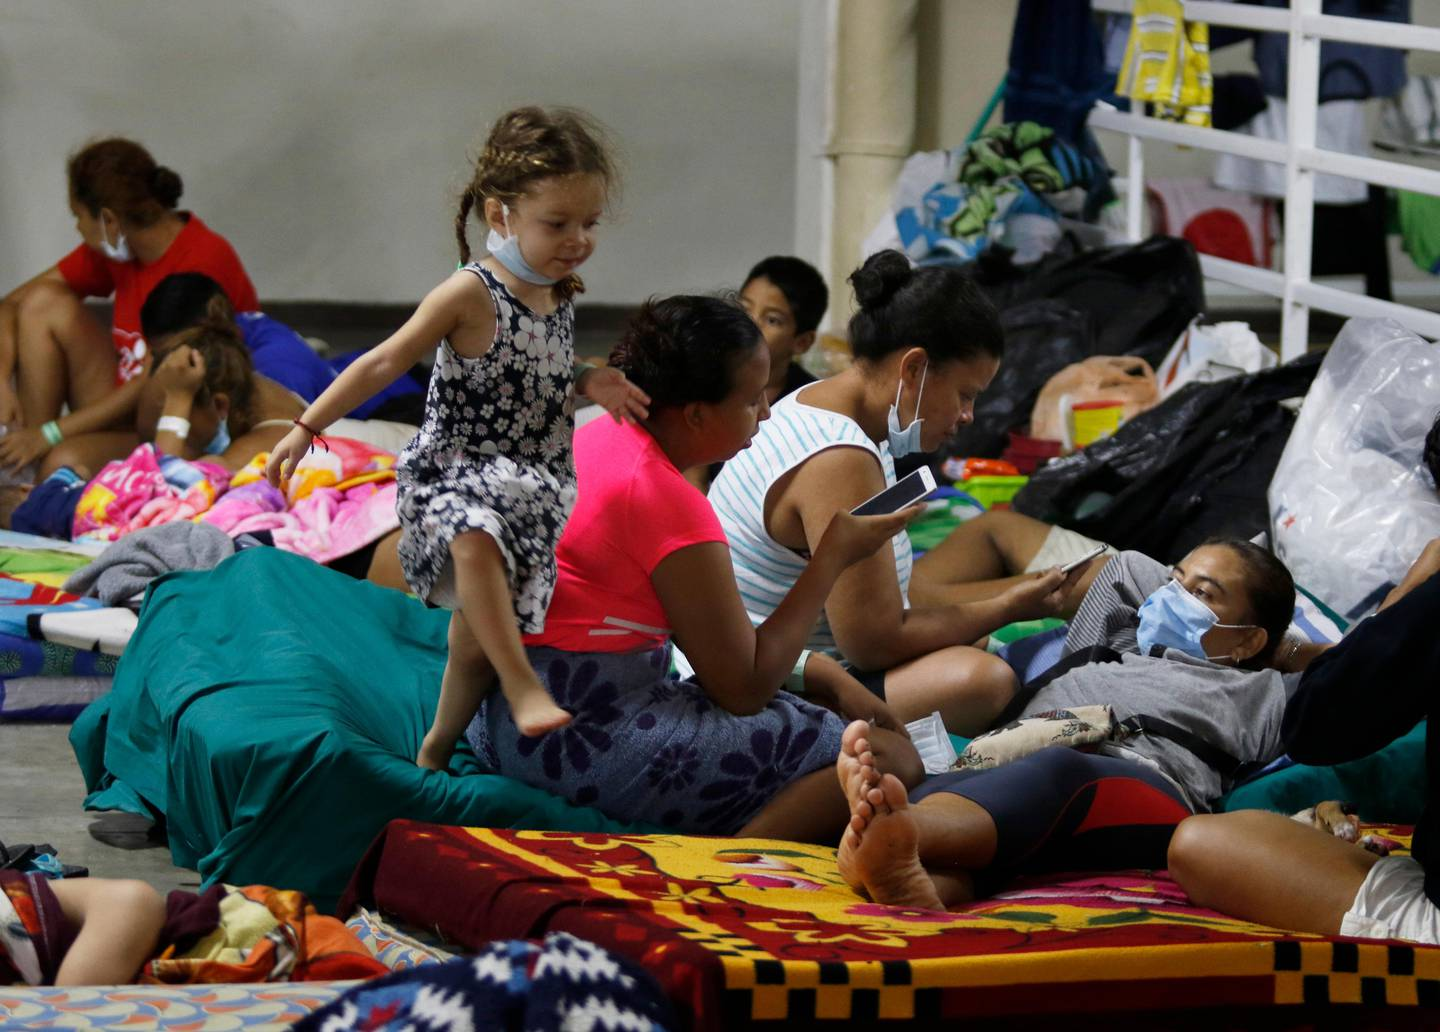 Hurricane victims take refuge in a shelter in San Pedro Sula, Honduras, Saturday, Nov. 21, 2020. Shelters for people whose homes were flooded or damaged by hurricanes Eta and Iota in Honduras are now so crowded that thousands of victims have taken refuge under highway overpasses or bridges. The Red Cross estimates that about 4.2 million people were affected by the back-to-back hurricanes in November in Honduras, Nicaragua and Guatemala. (AP Photo/Delmer Martinez)